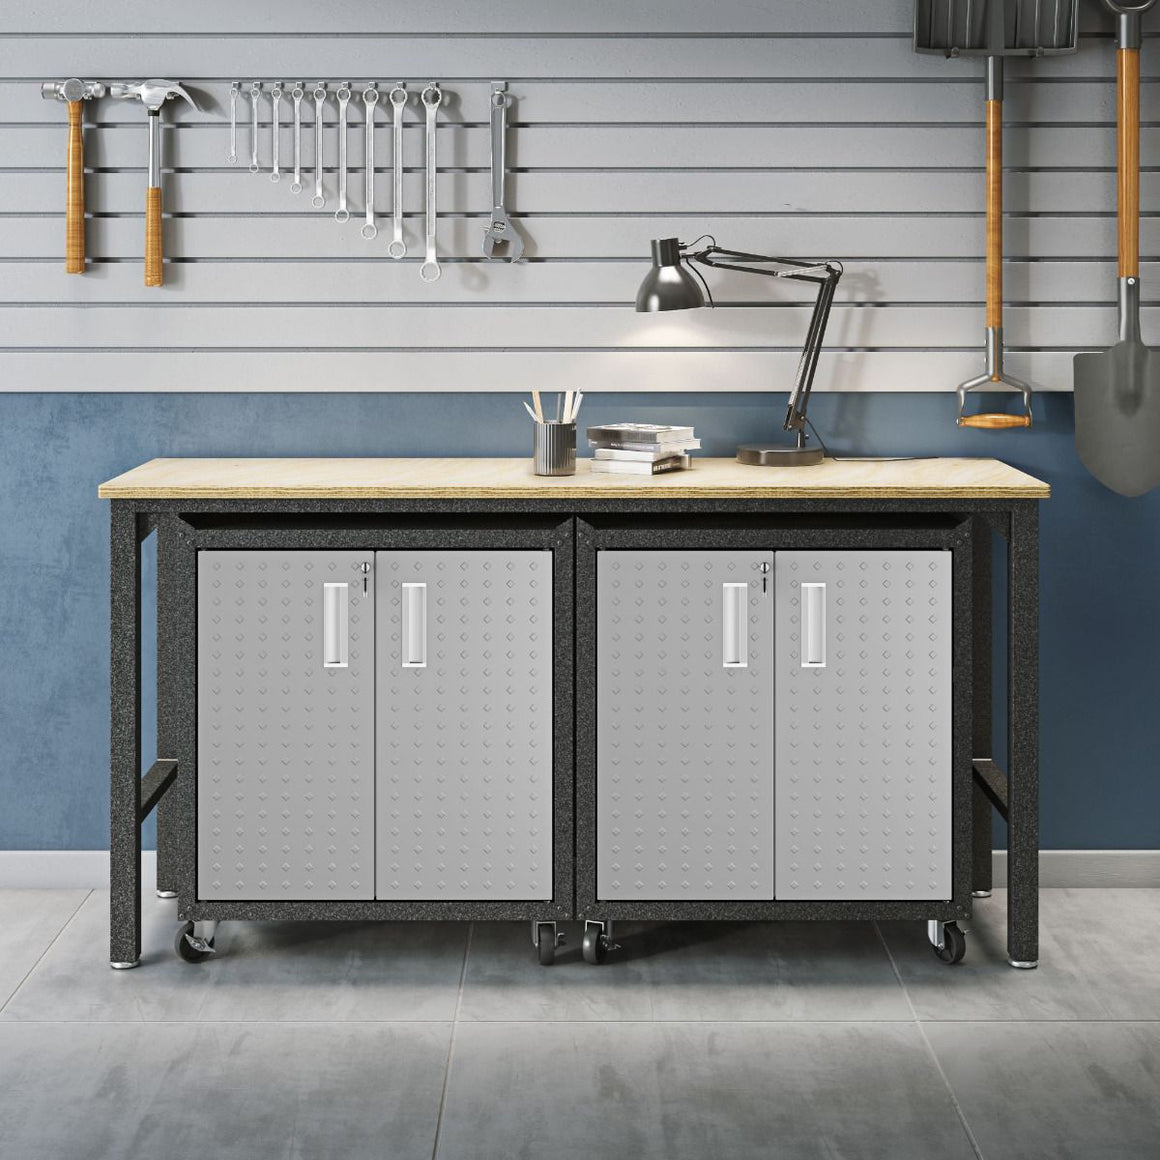 3-Piece Fortress Mobile Space-Saving Garage Cabinet and Worktable 1.0 in Grey